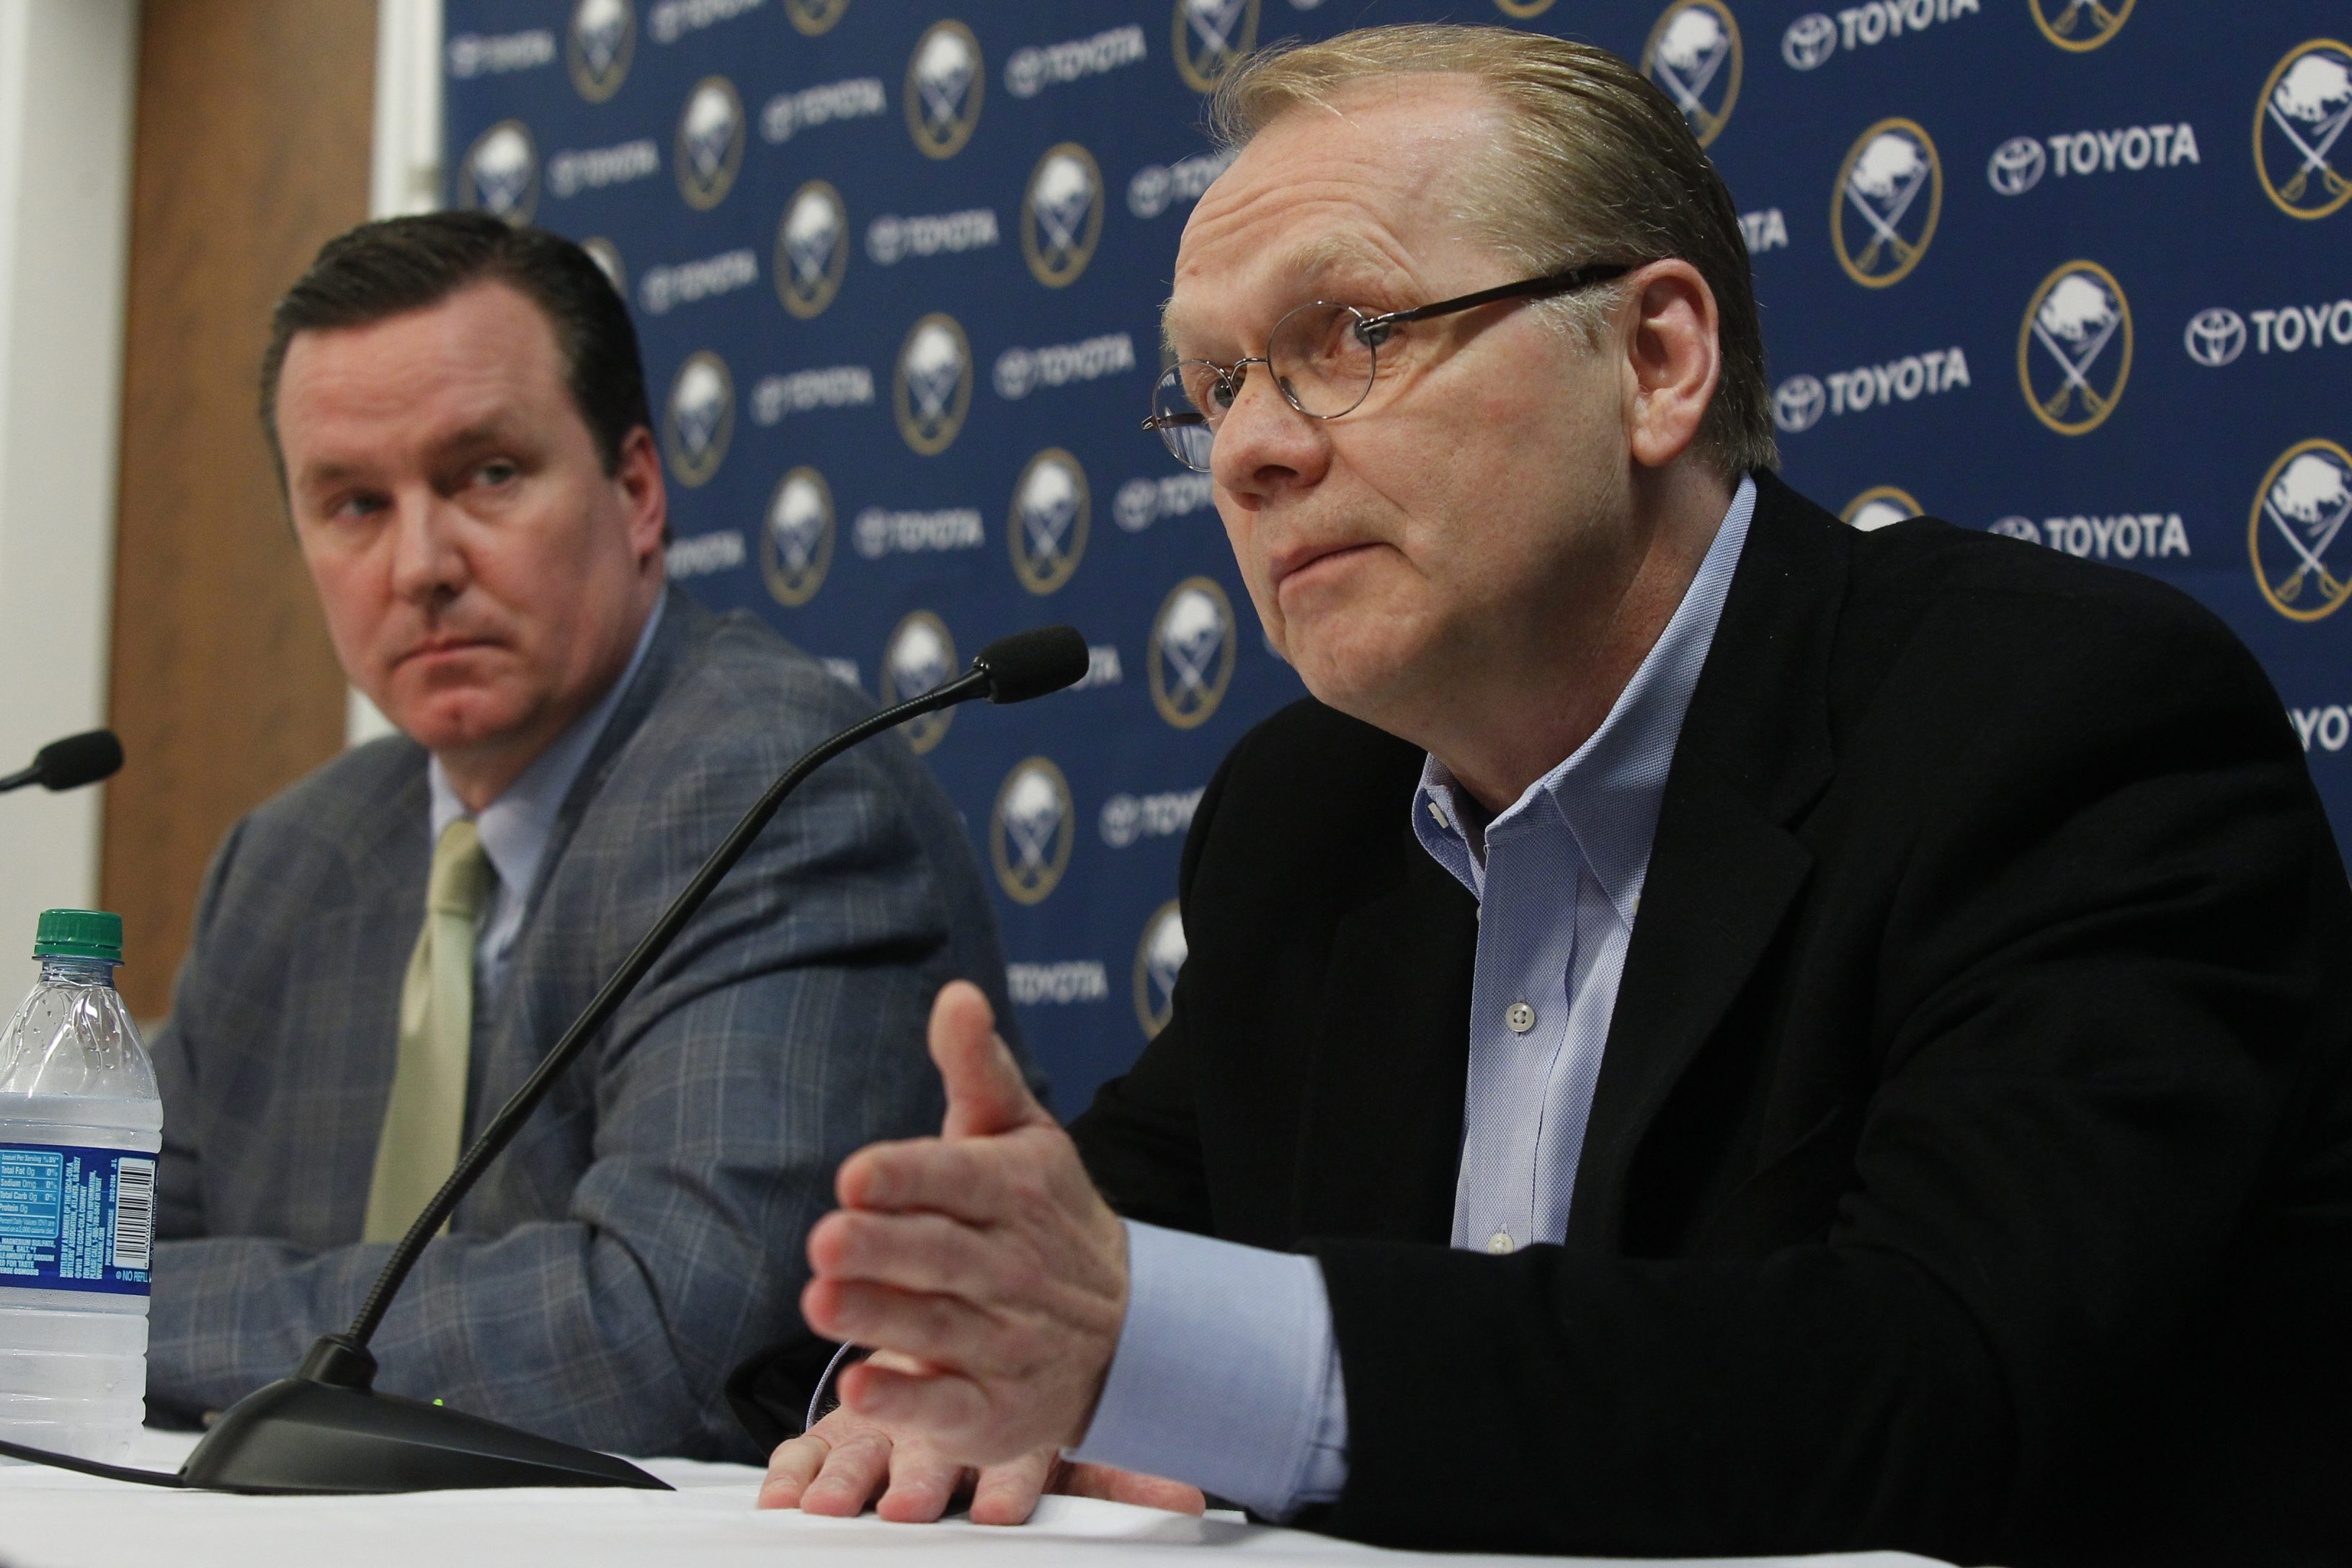 Sabres President Ted Black's performance at the season-ending news conference with Darcy Regier, right, didn't win over too many in the organization, a source says.